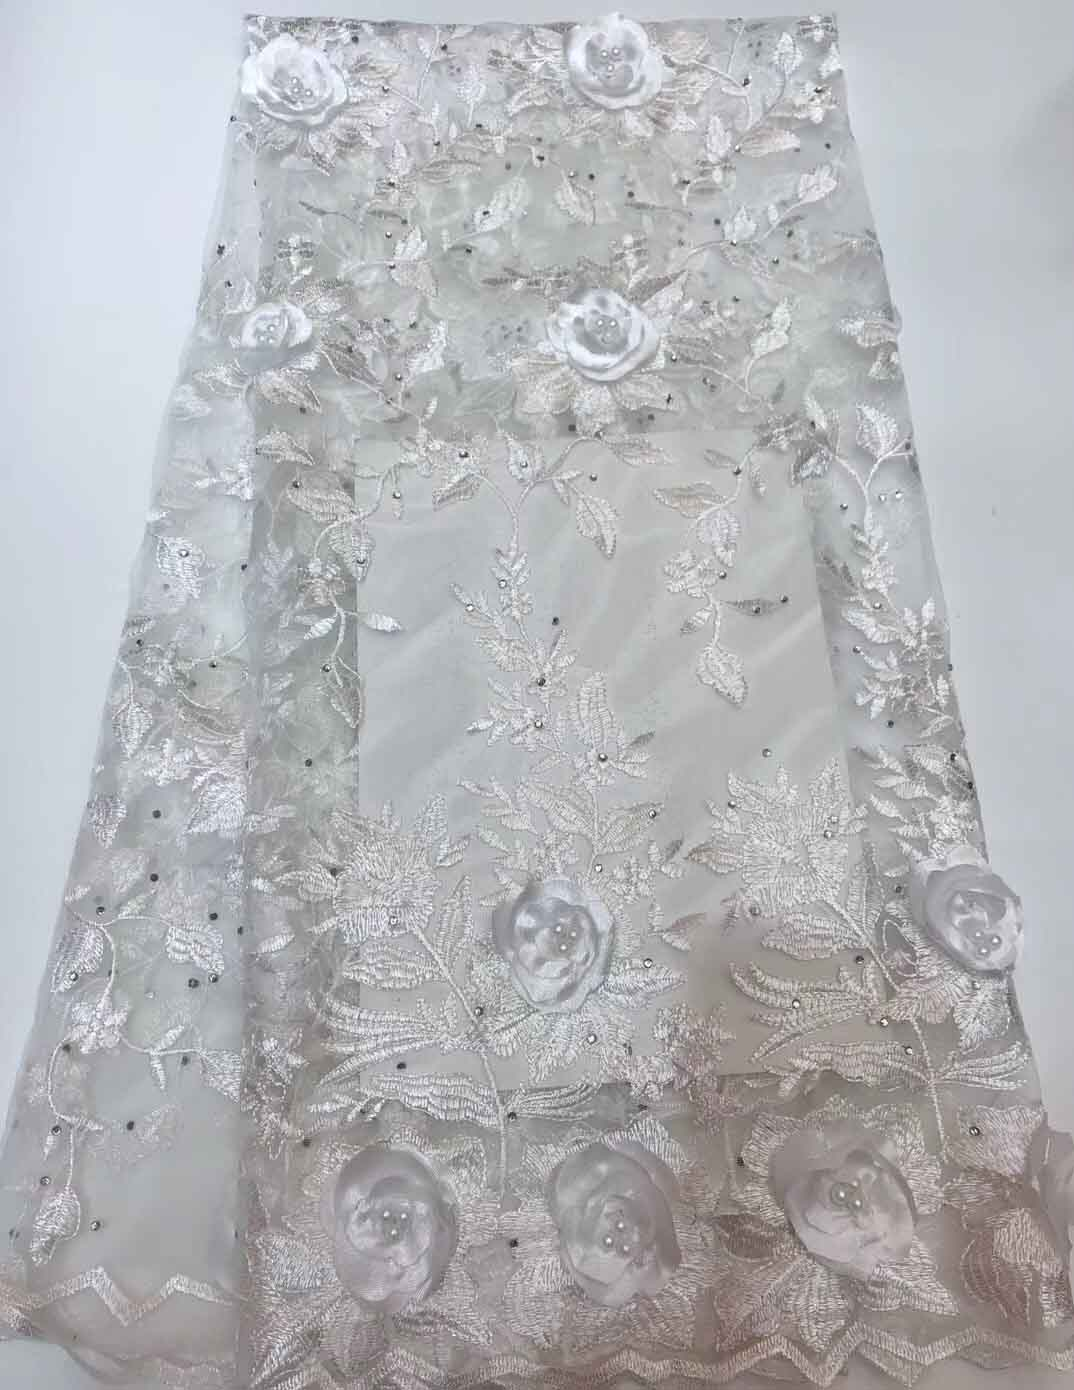 Realistic White African Lace Fabric With Beads 2018 Stones French Appliqued Lace Fabric For Wedding Dress Bridal Nigerian Lace Fabric Beautiful And Charming Lace Home & Garden